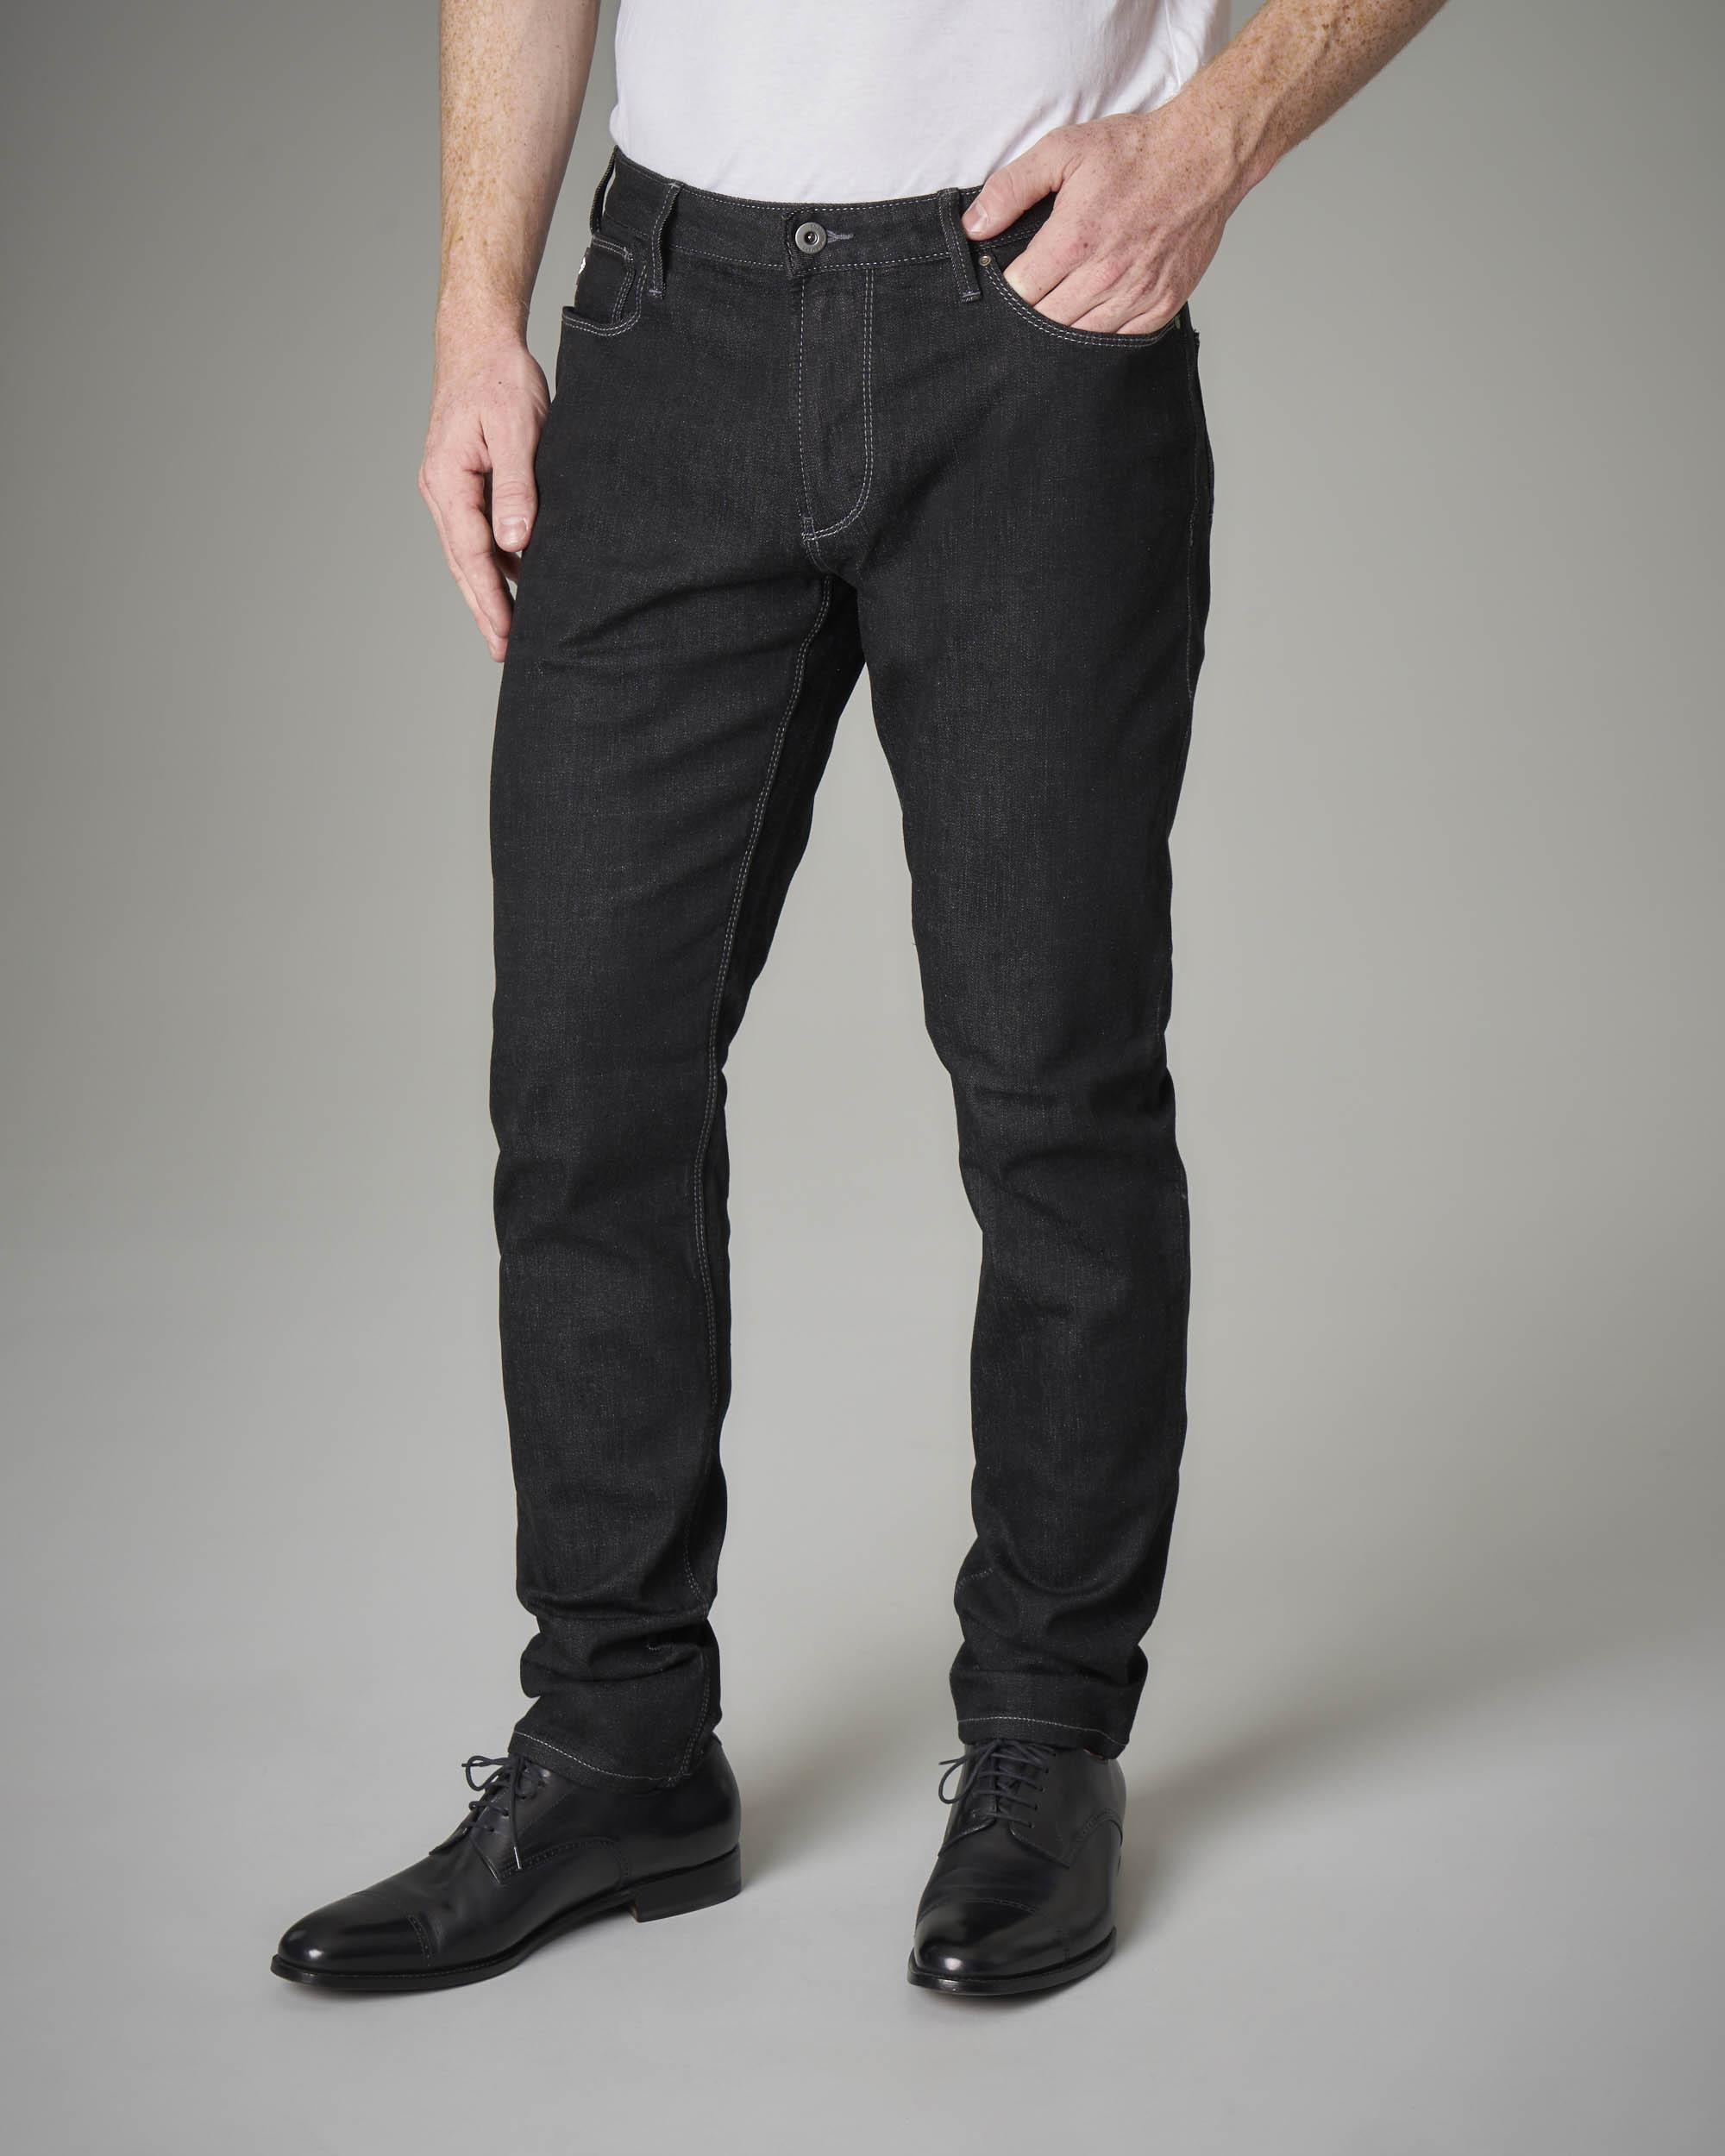 Jeans J06 nero in cotone stretch